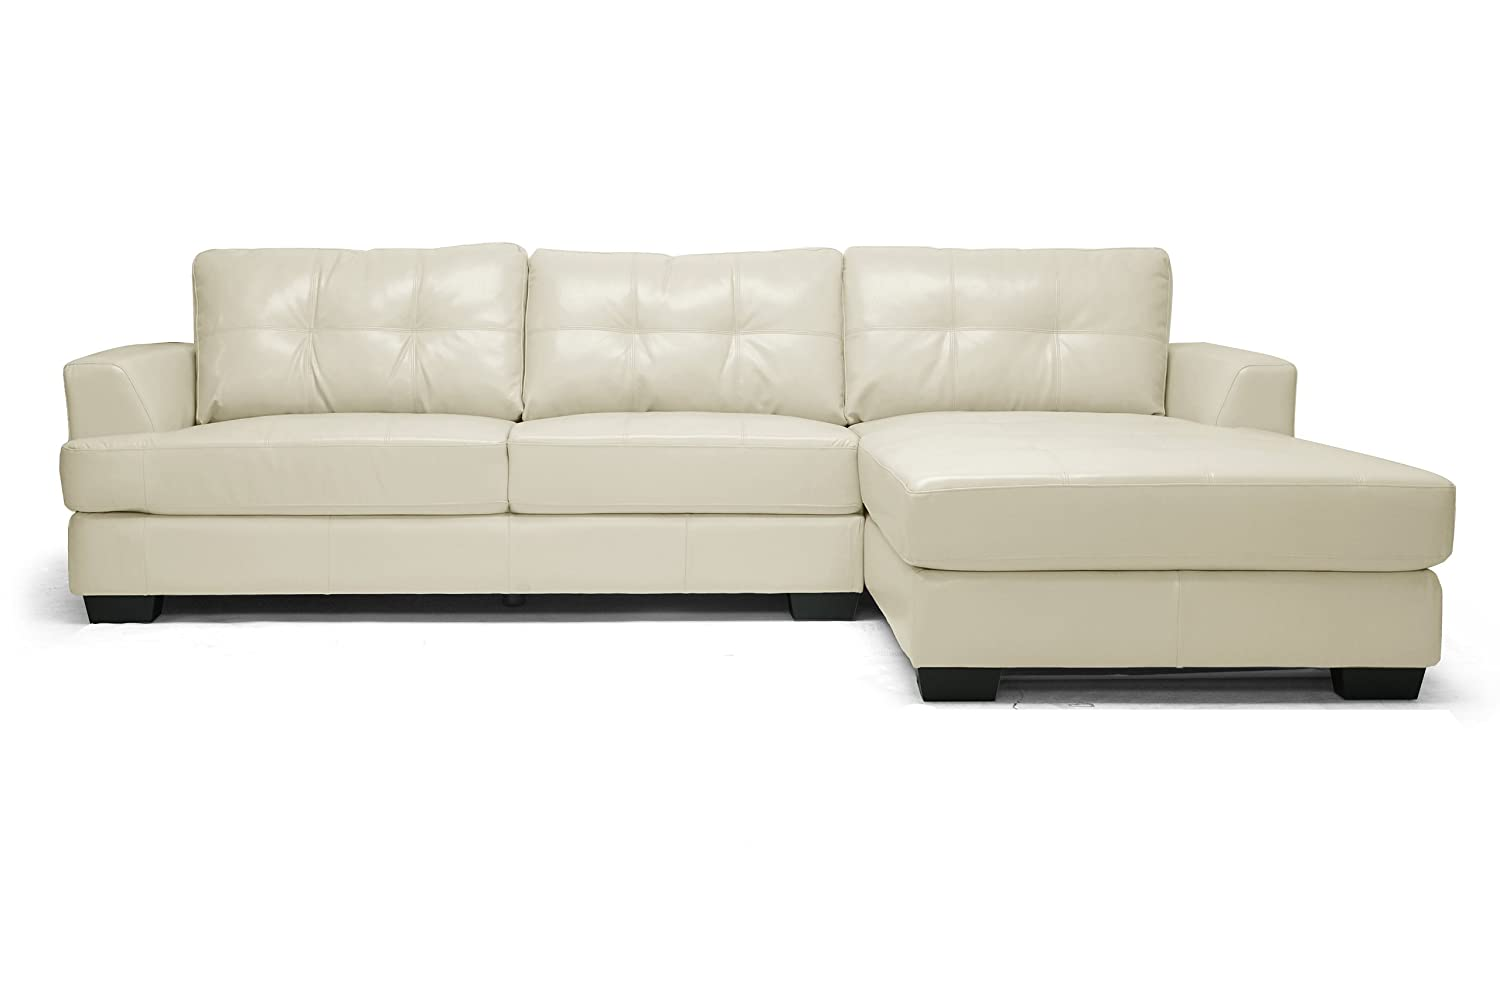 Amazon.com: Baxton Studio Dobson Leather Modern Sectional Sofa, Cream:  Kitchen U0026 Dining